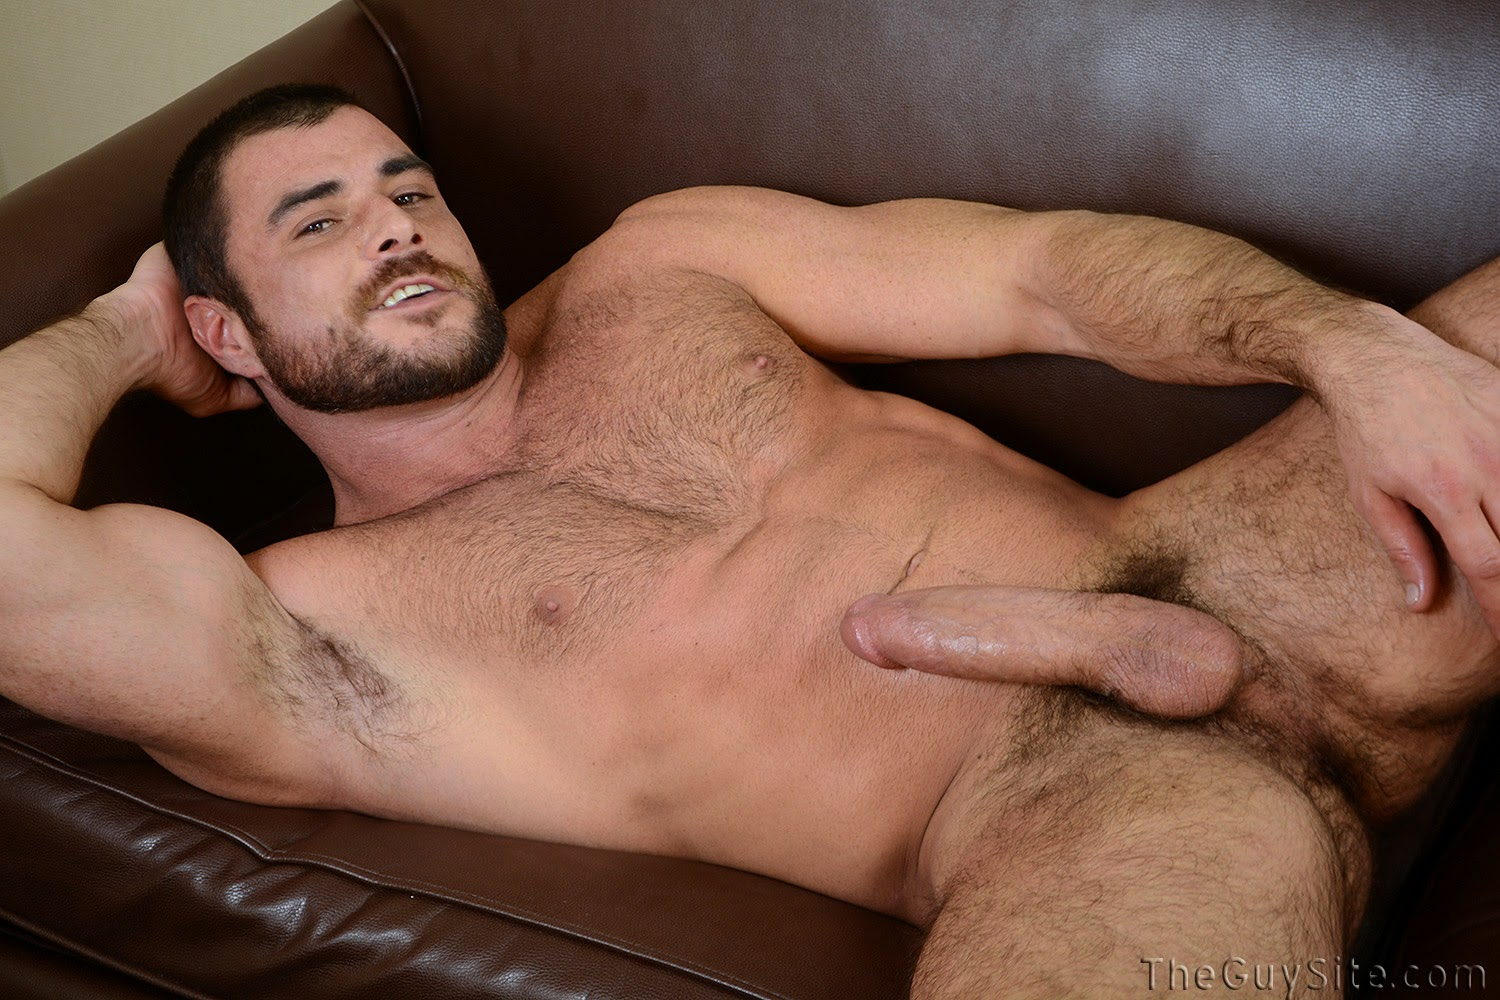 hairy gay site